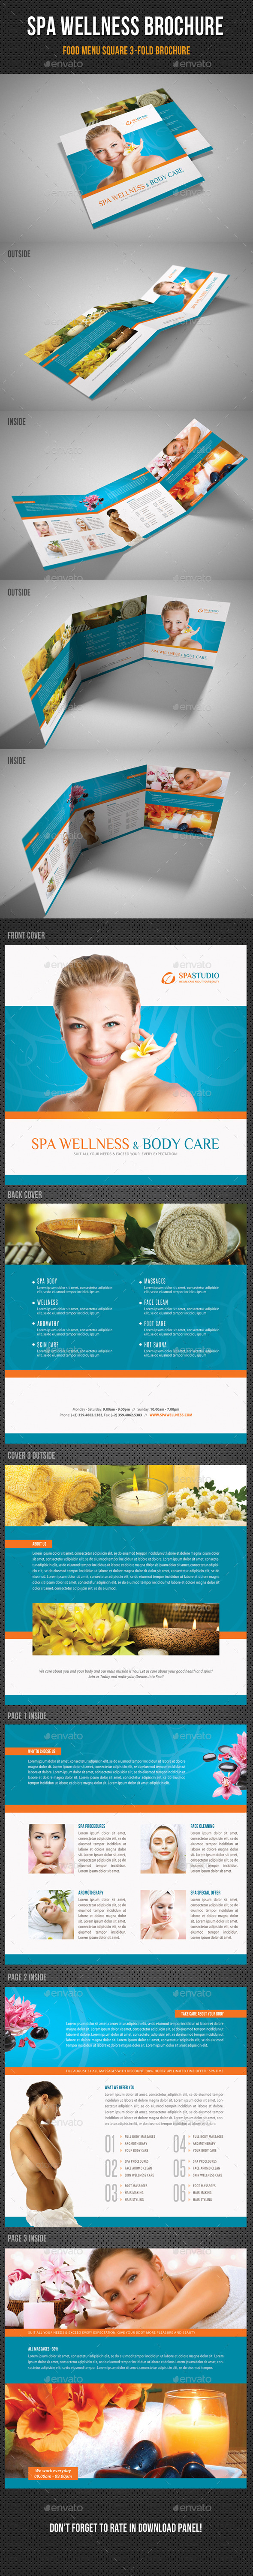 GraphicRiver Spa Wellness Square 3-Fold Brochure 01 11353416